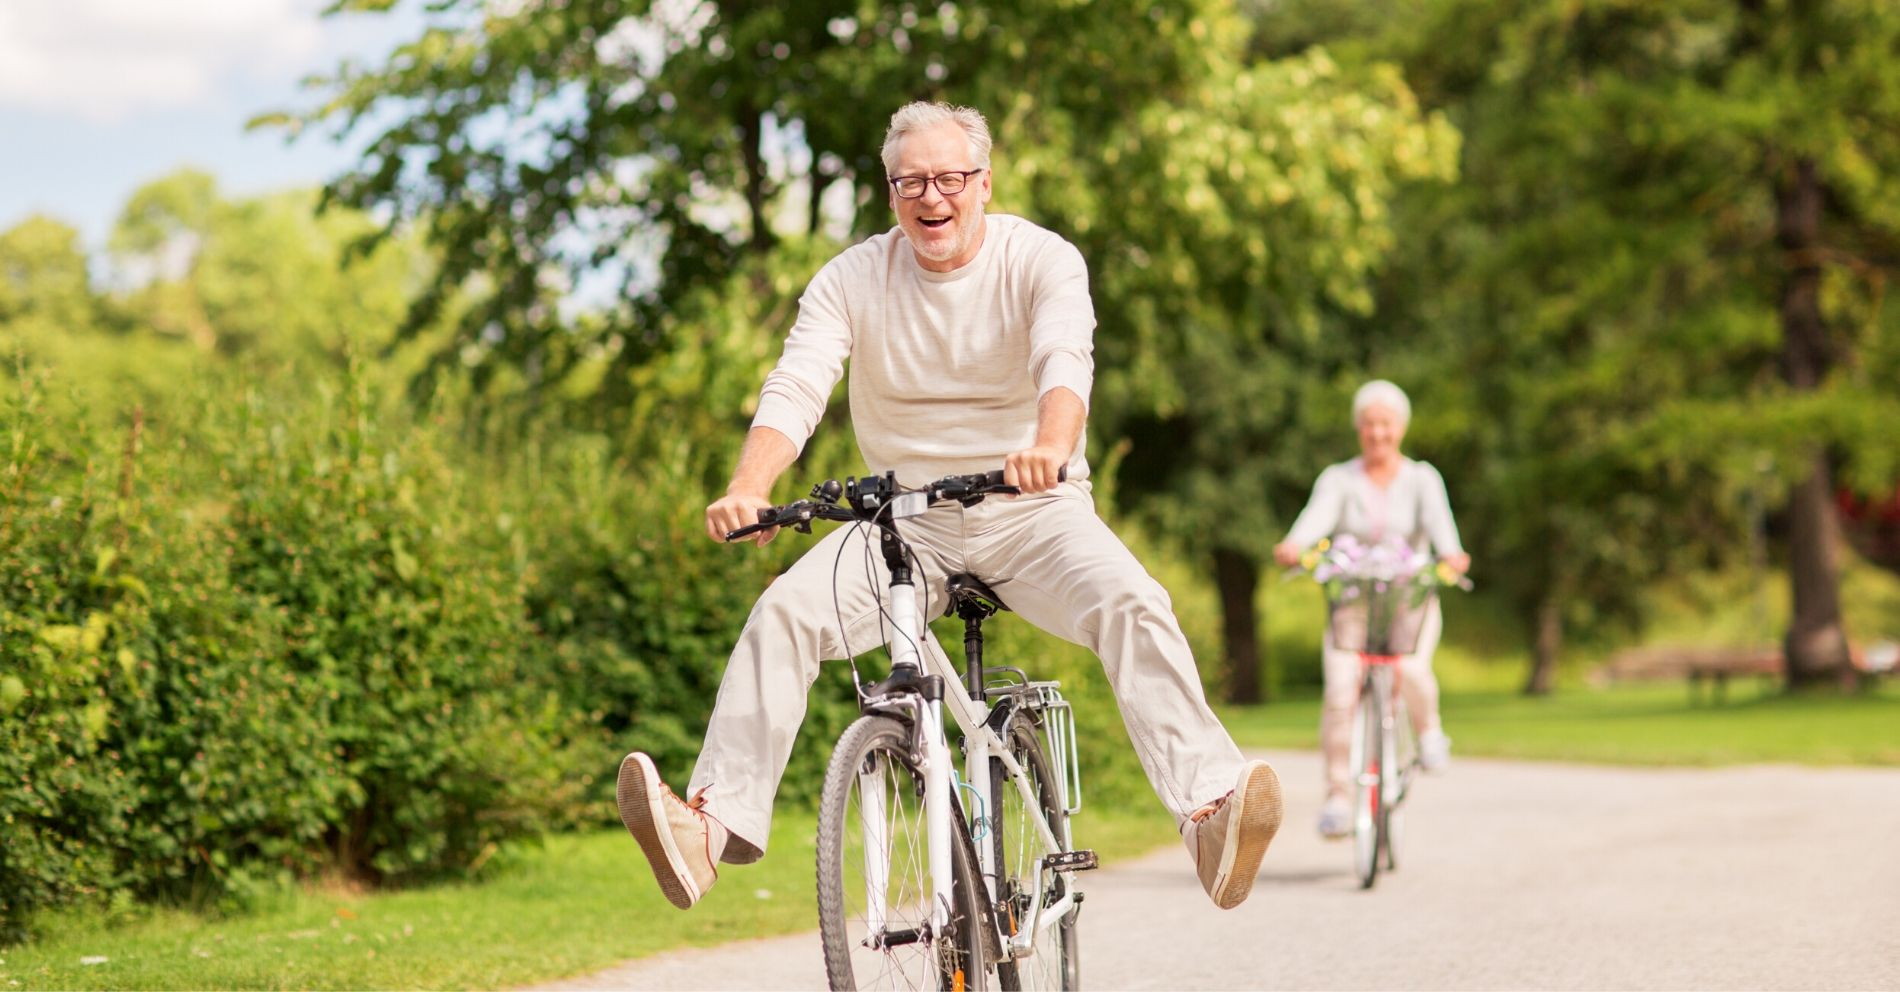 10 Life Lessons You Must Learn From Senior Citizens